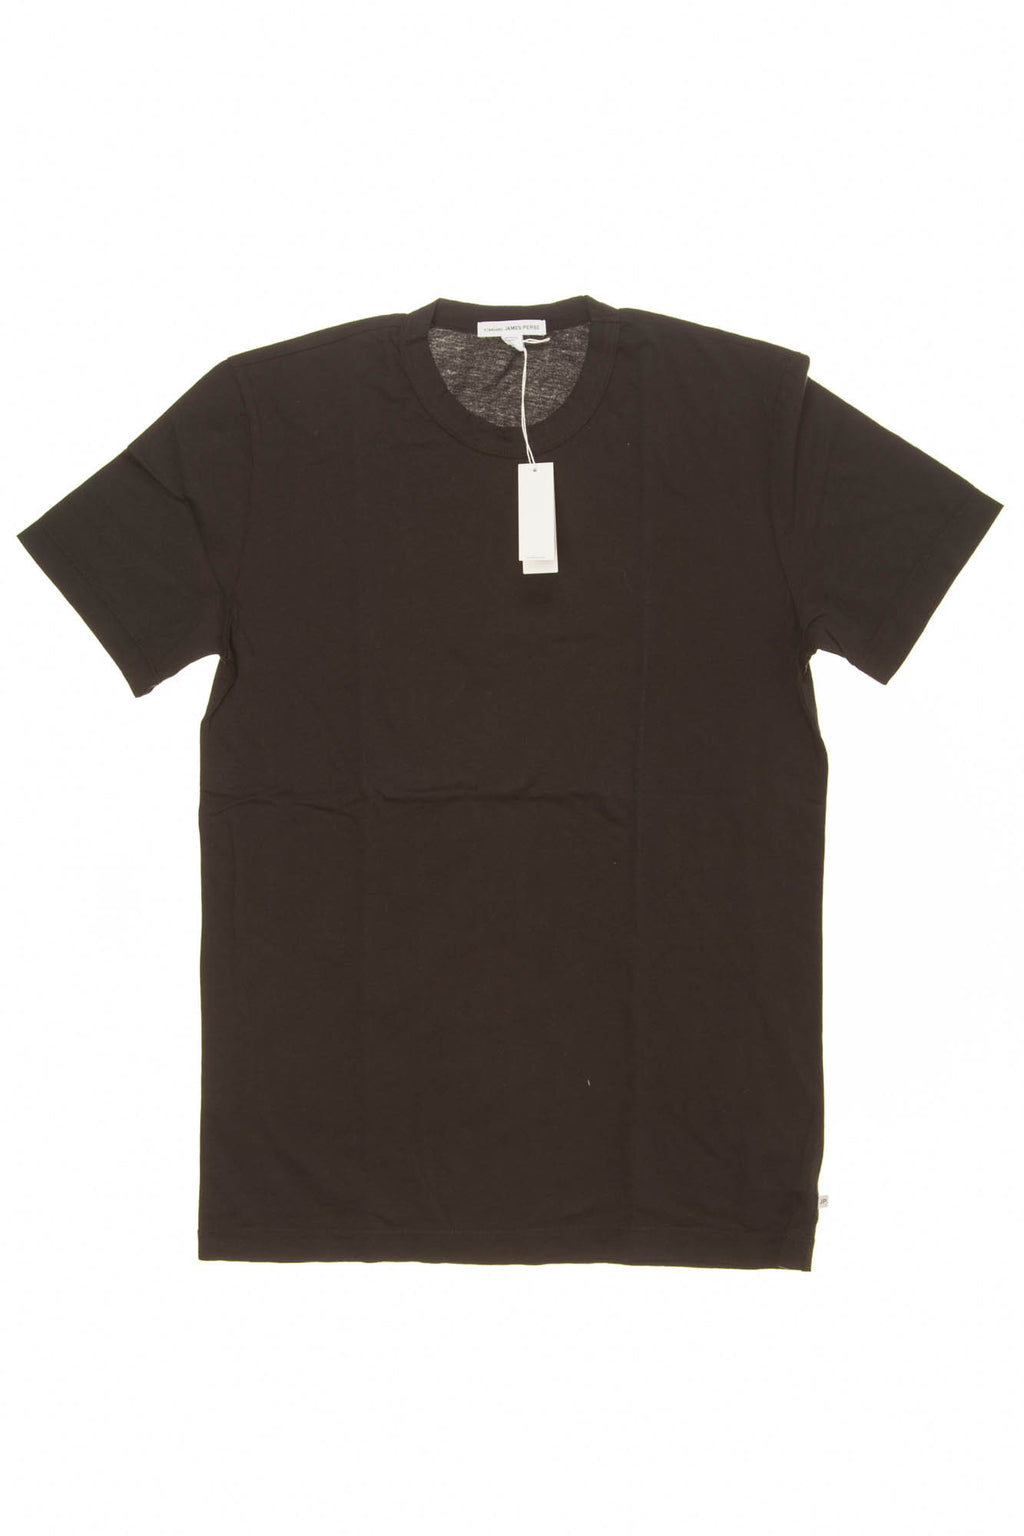 James Perse - NWT Black Short Sleeve Tshirt - 1